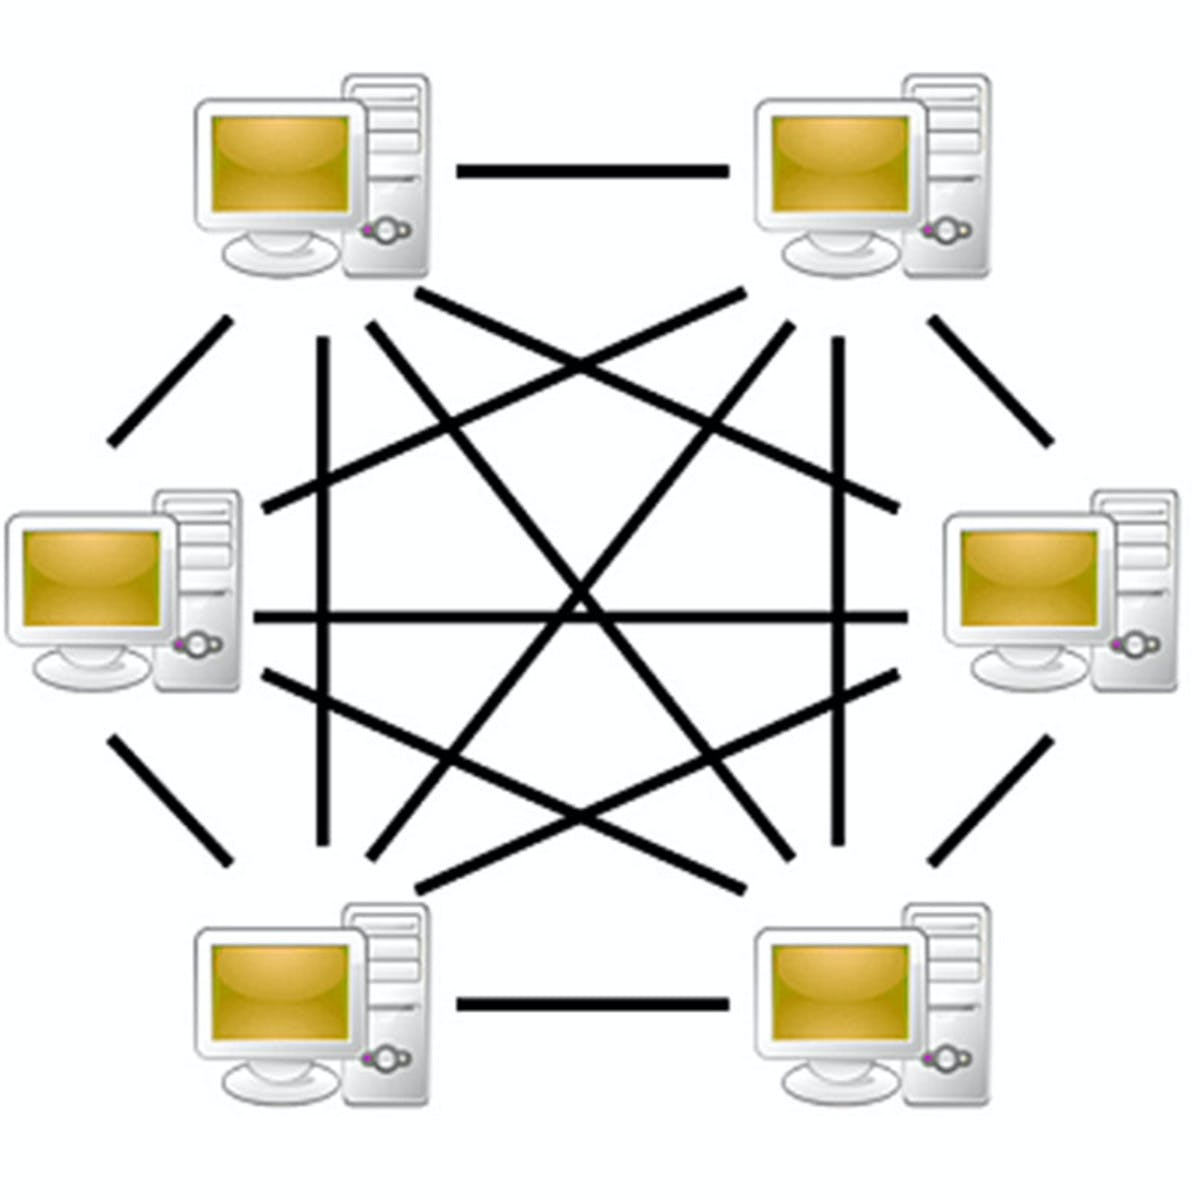 Packet Switching Networks and Algorithms